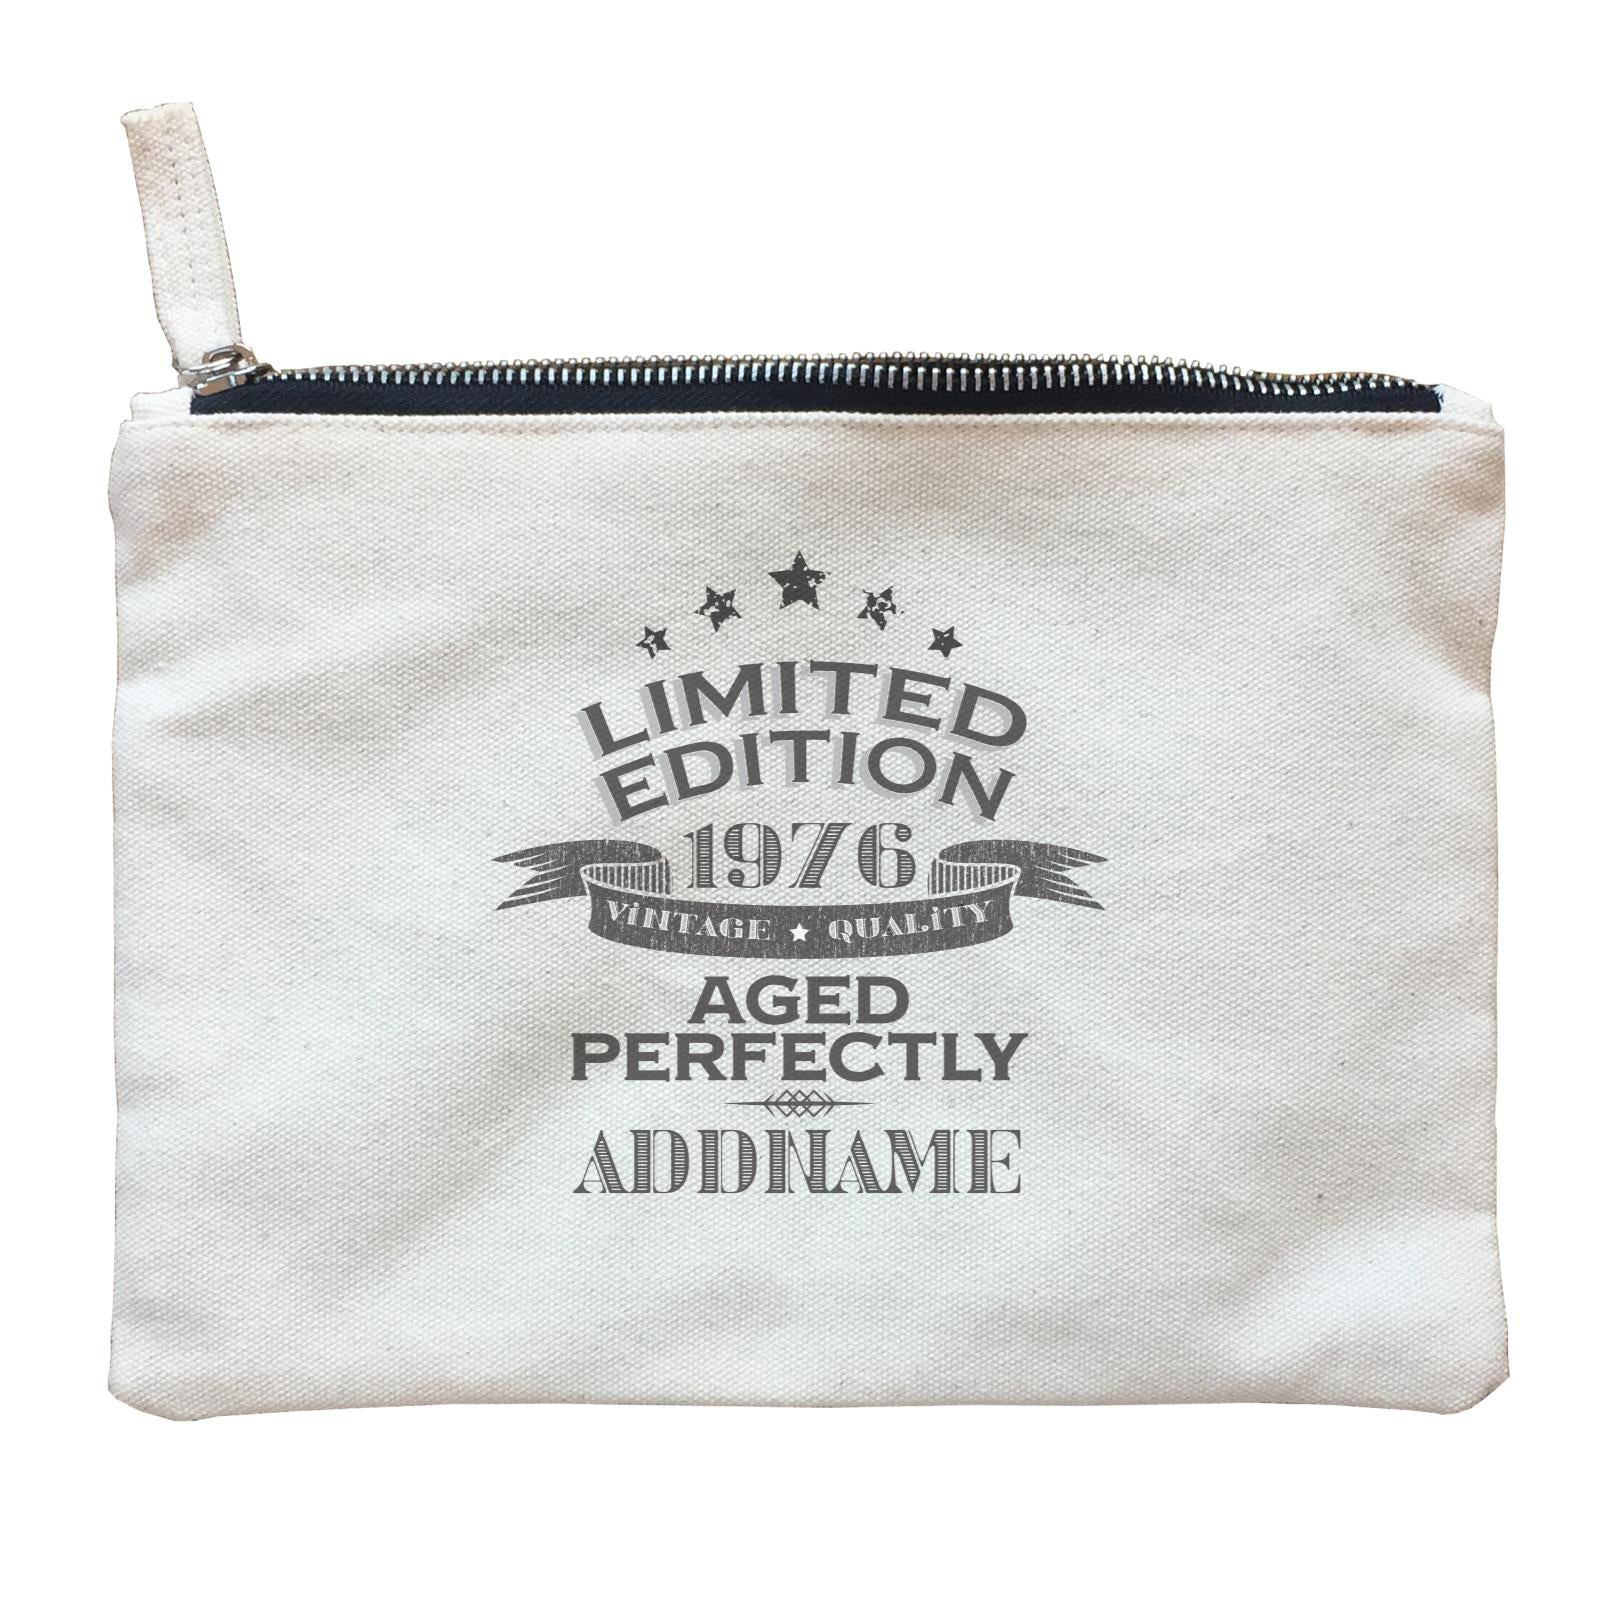 Personalize It Birthyear Limited Edition Aged Perfectly with Addname and Add Year Zipper Pouch